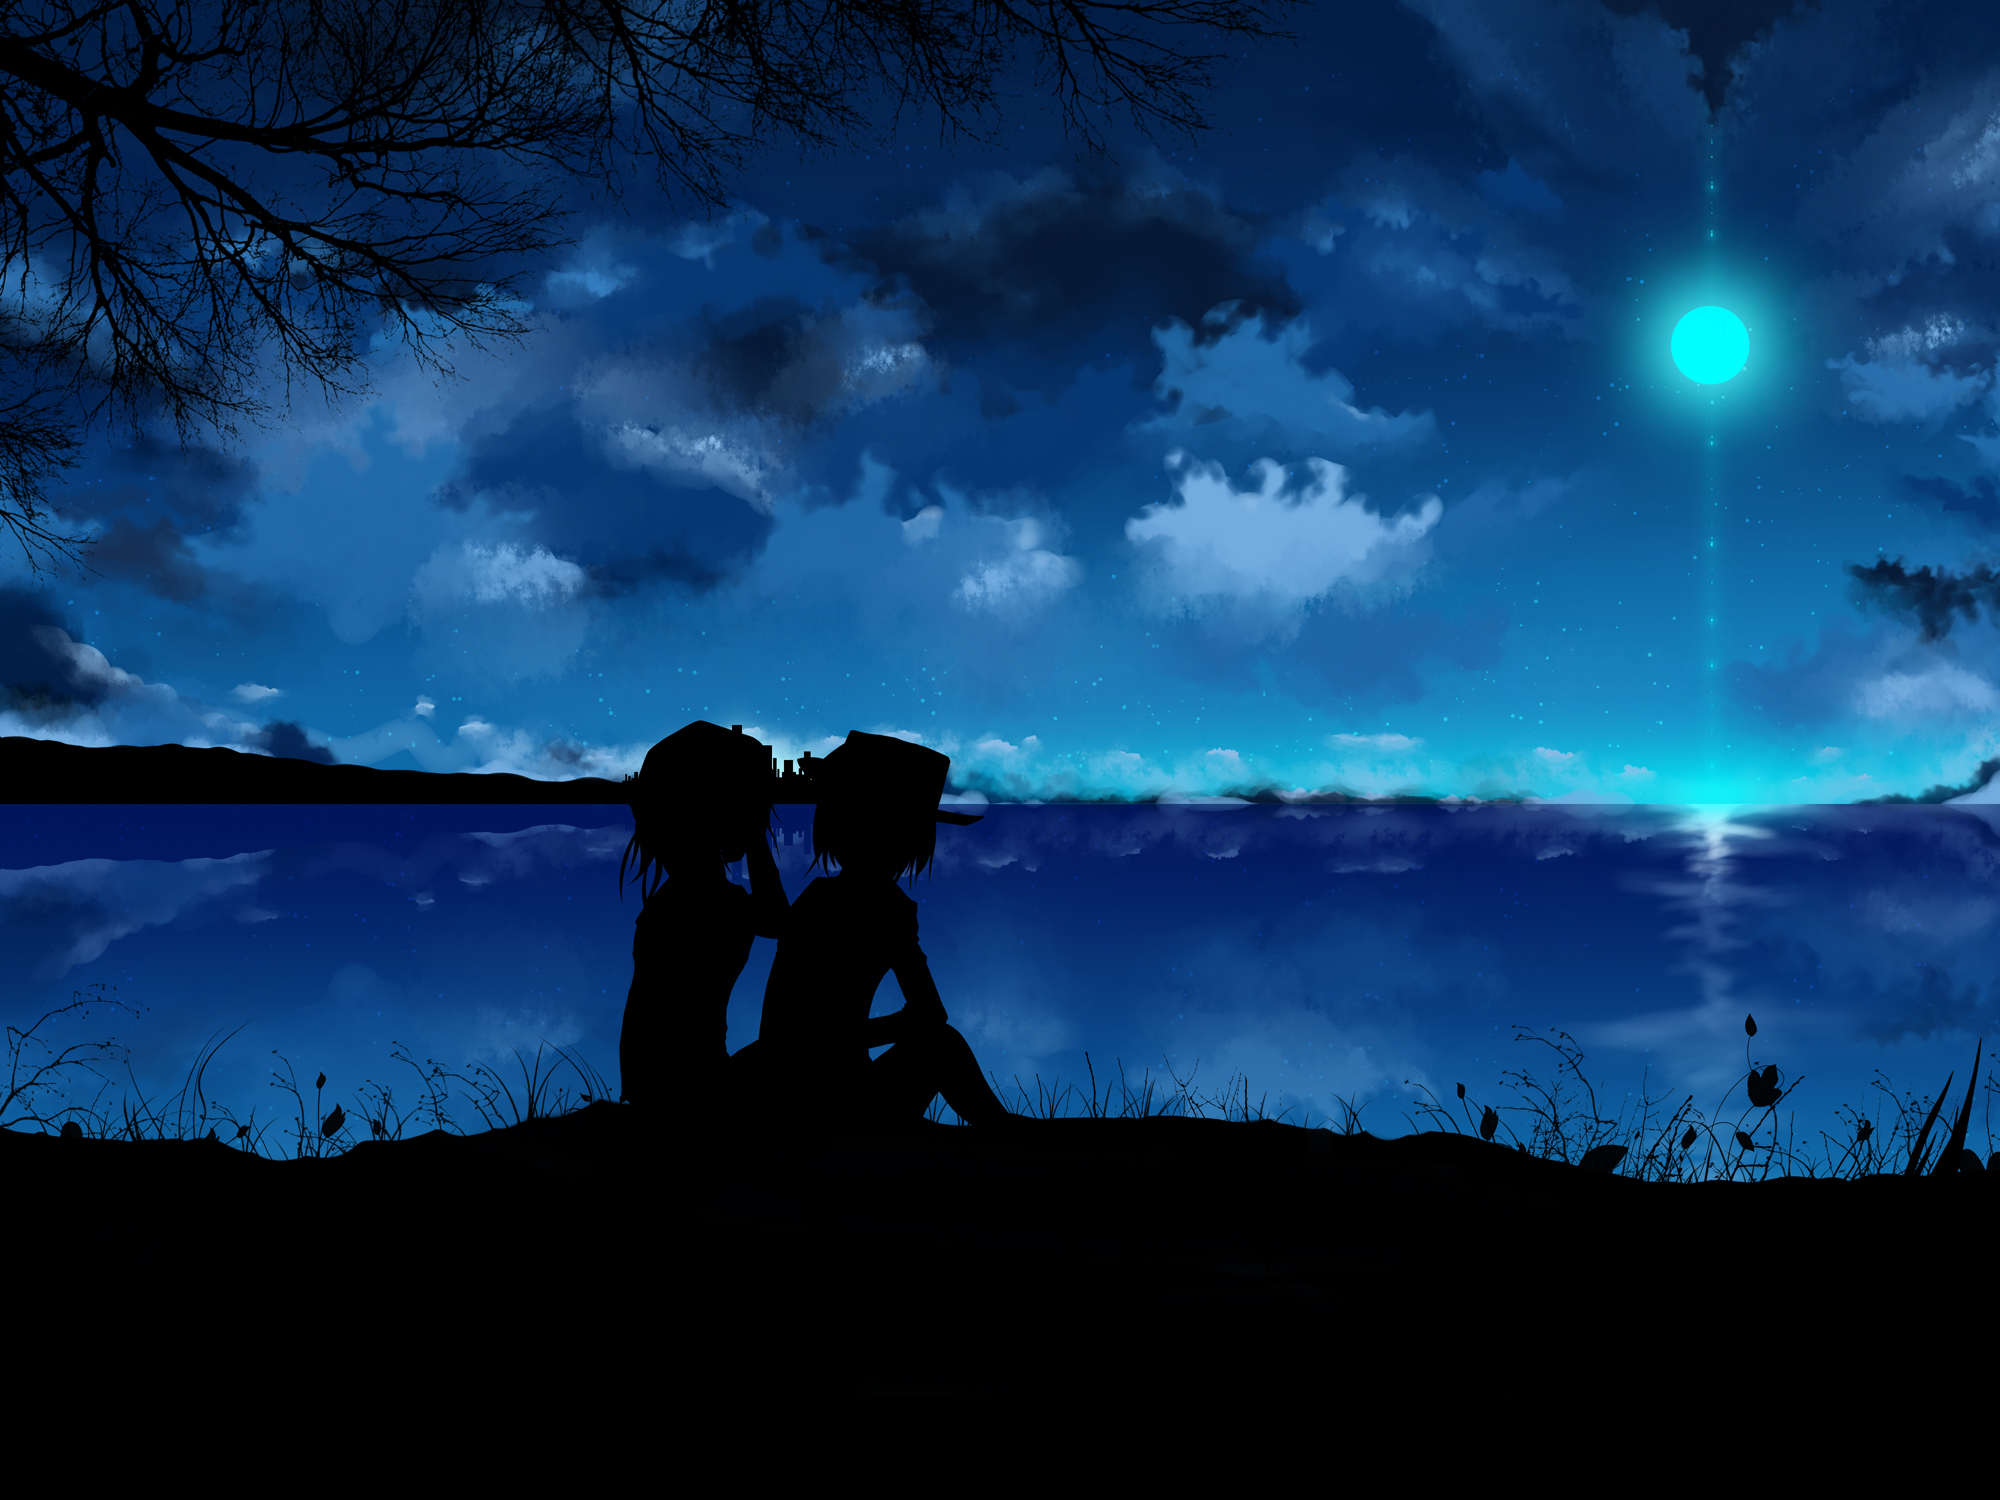 Dark Anime Scenery Wallpaper Clipart Hd